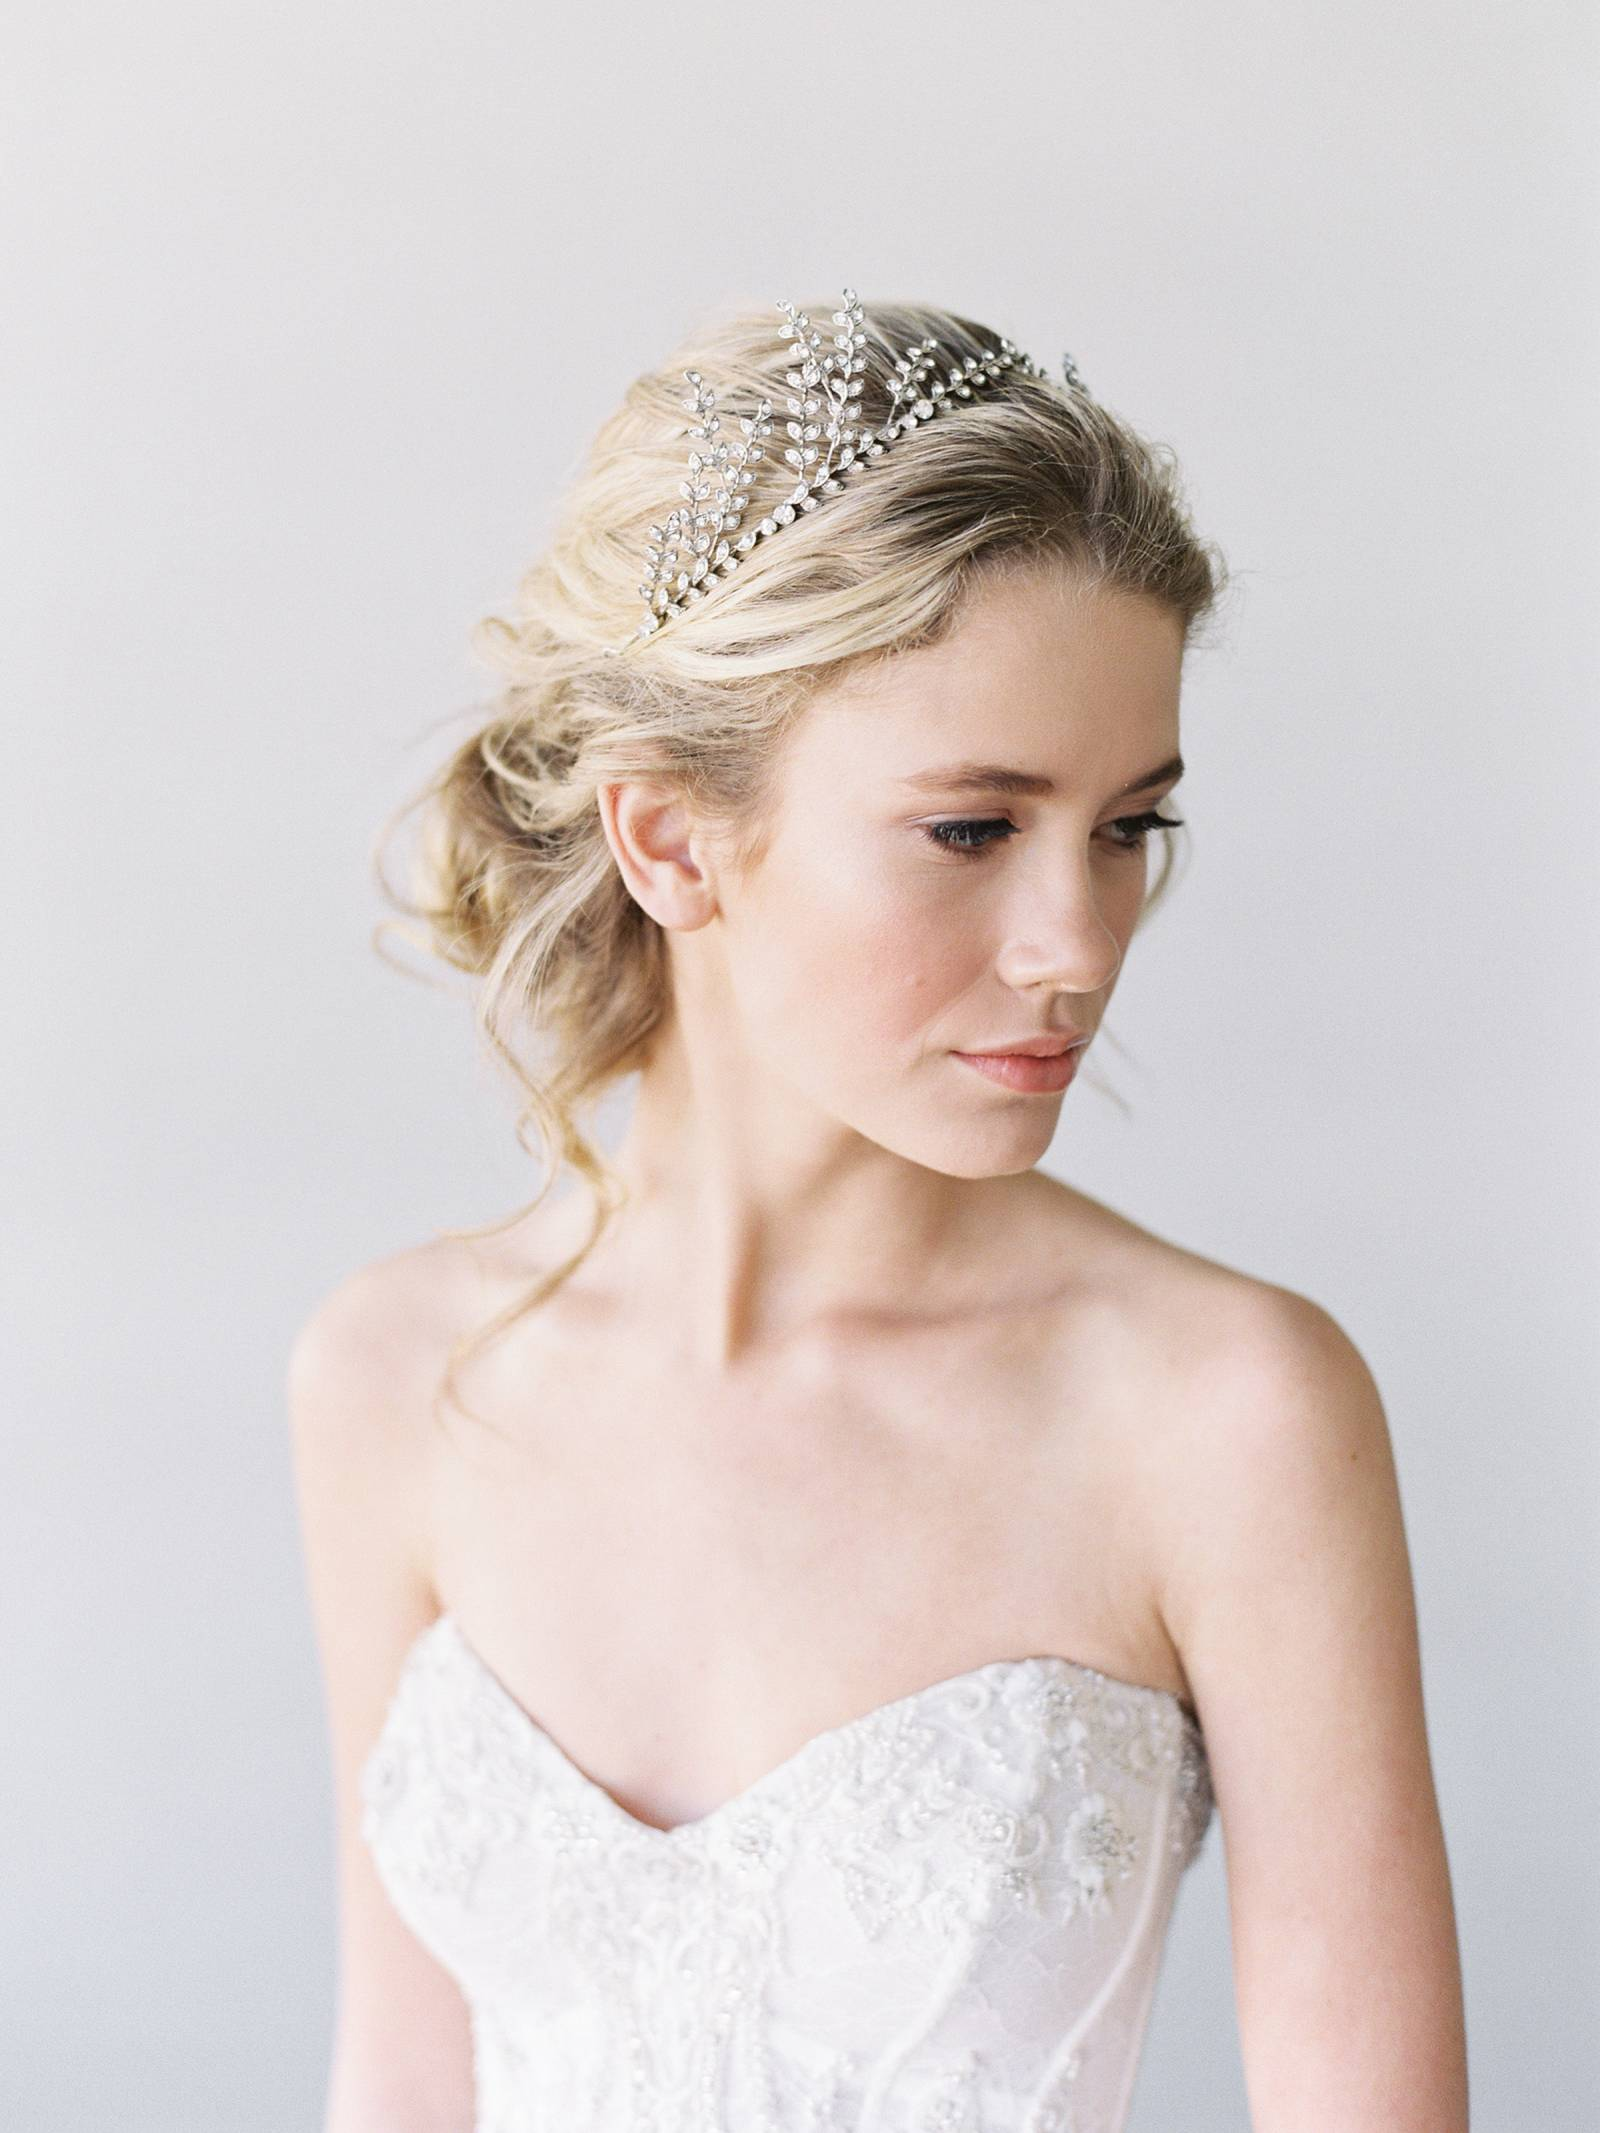 Fine Art Colorado Wedding Photography bride looking down in a beautiful headpiece